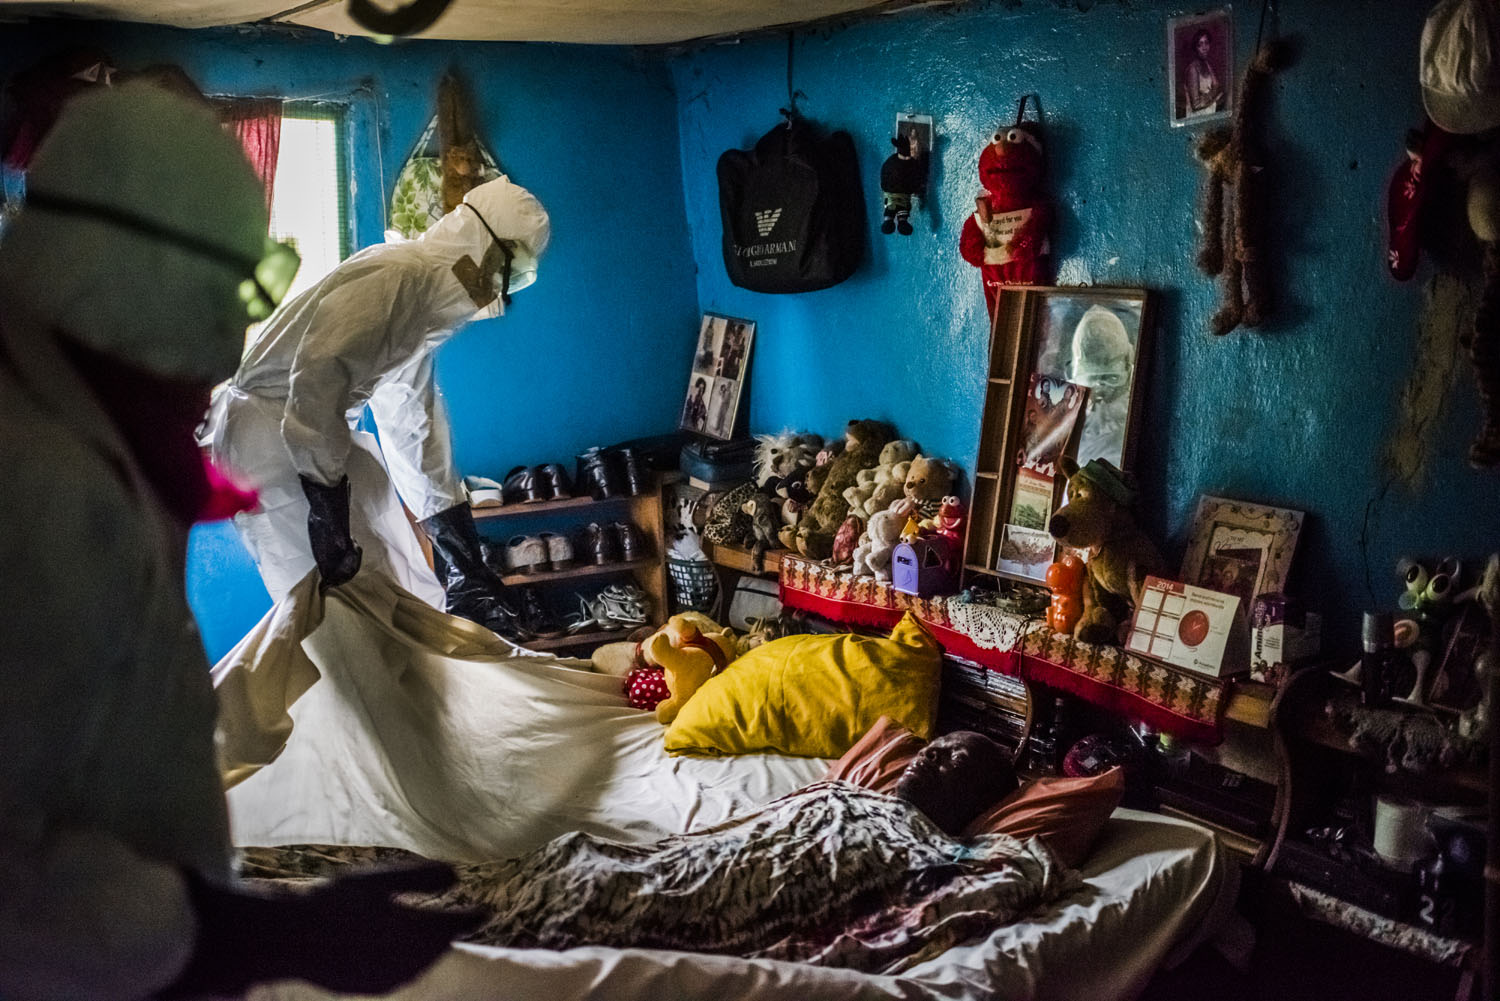 Members of a burial team from the Liberian Red Cross remove the body of a man, a suspected Ebola victim, from a home in Matadi on Sept. 17, 2014 in Monrovia, Liberia.